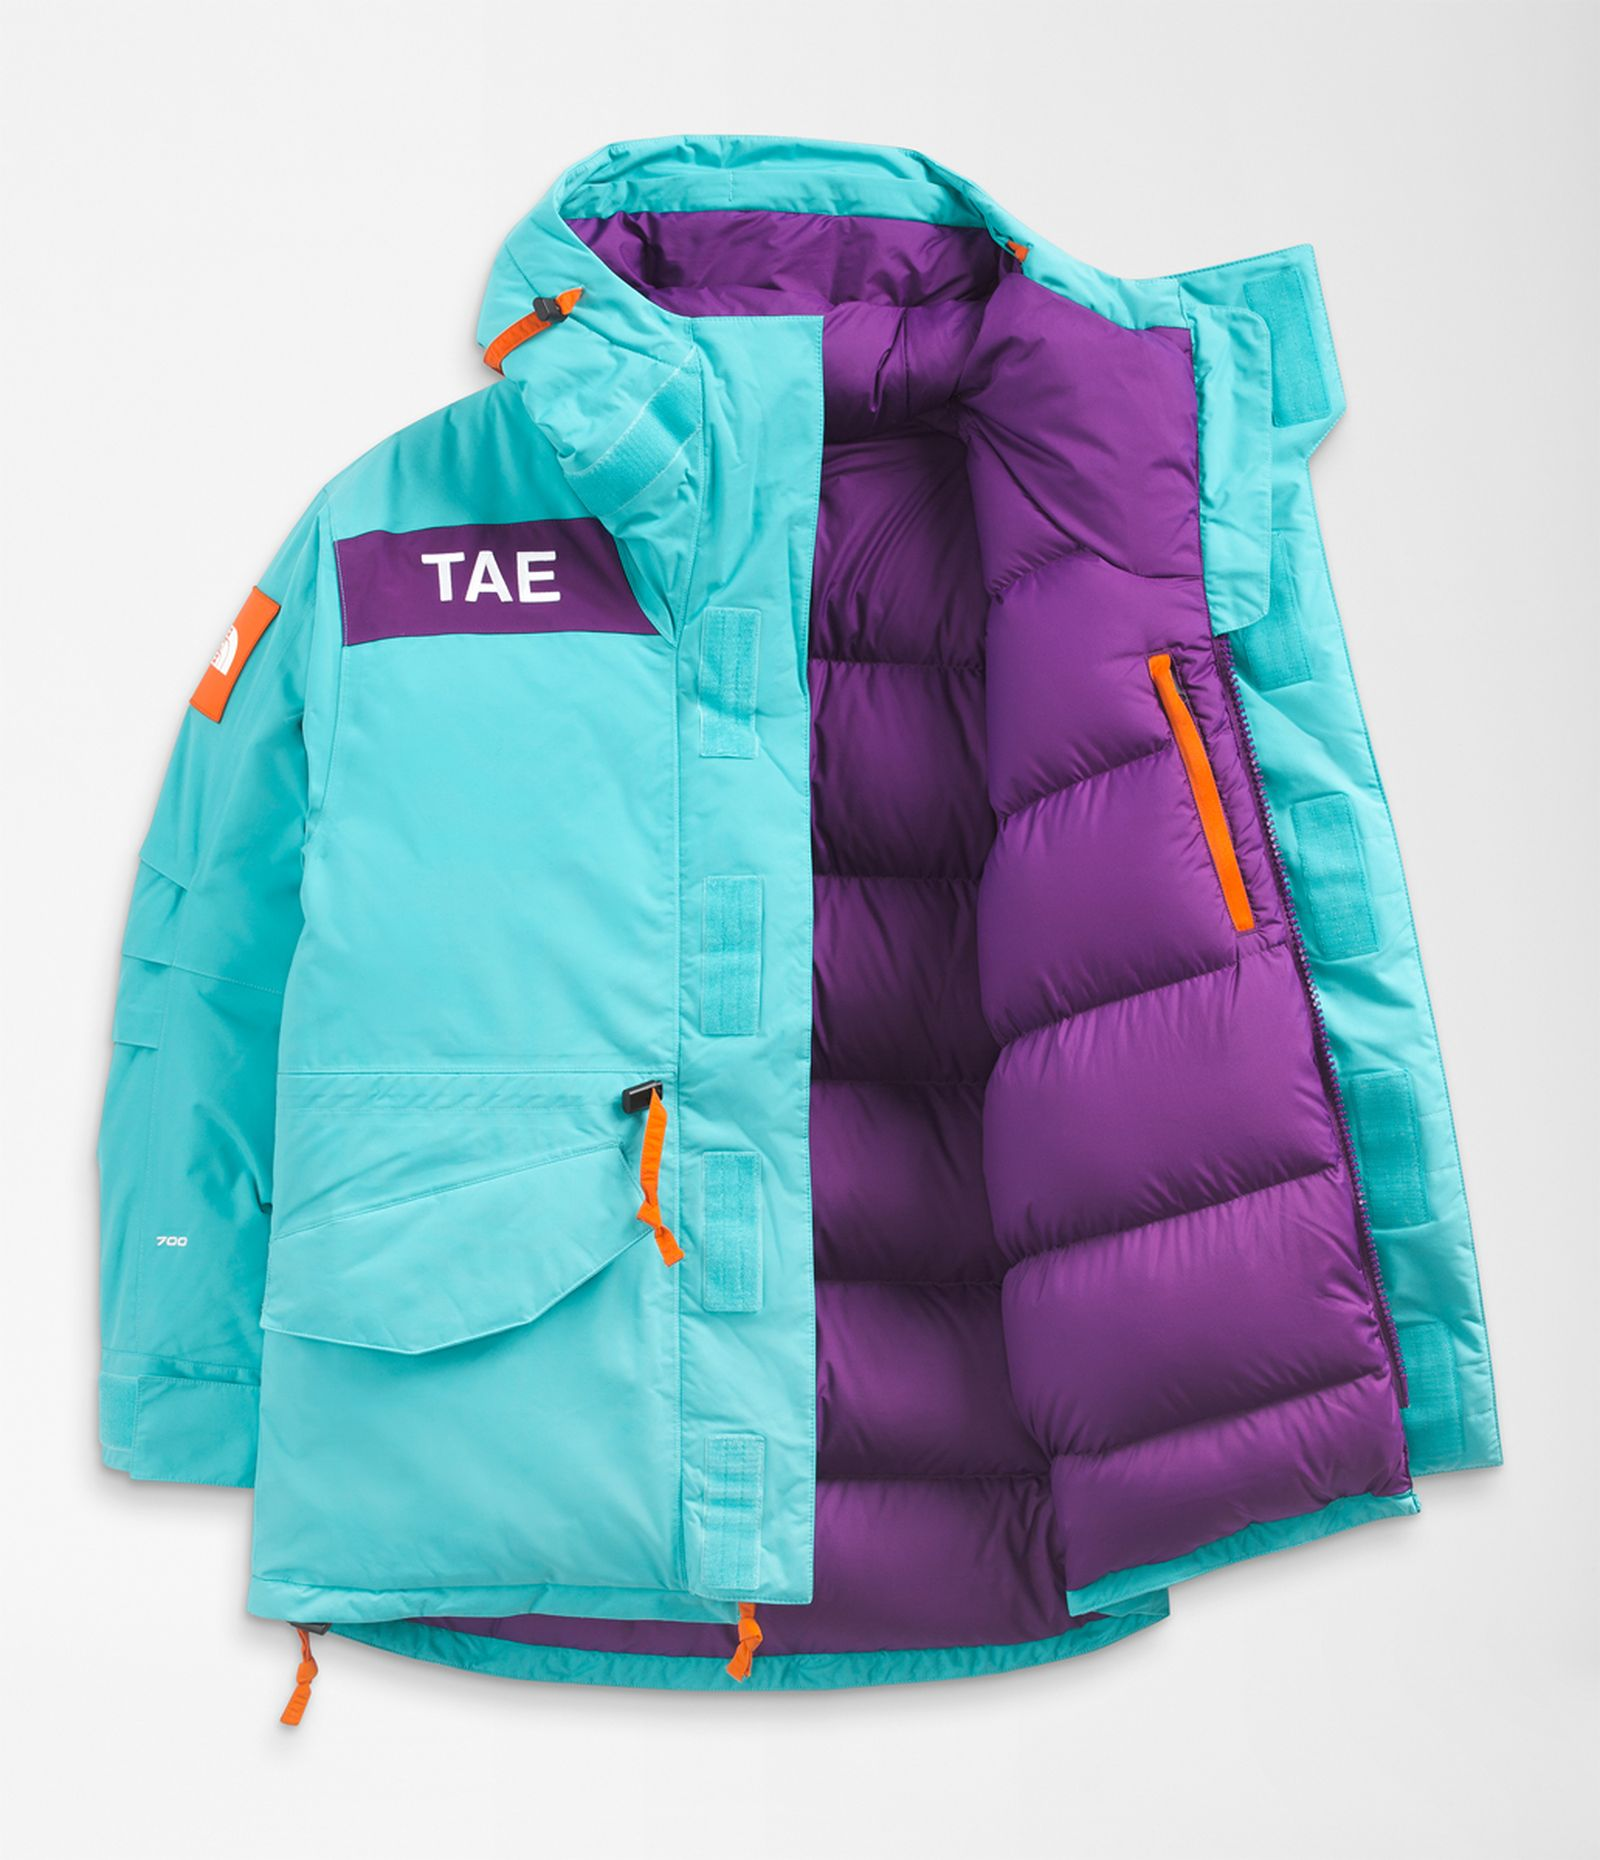 the-north-face-trans-antarctica-collection (11)